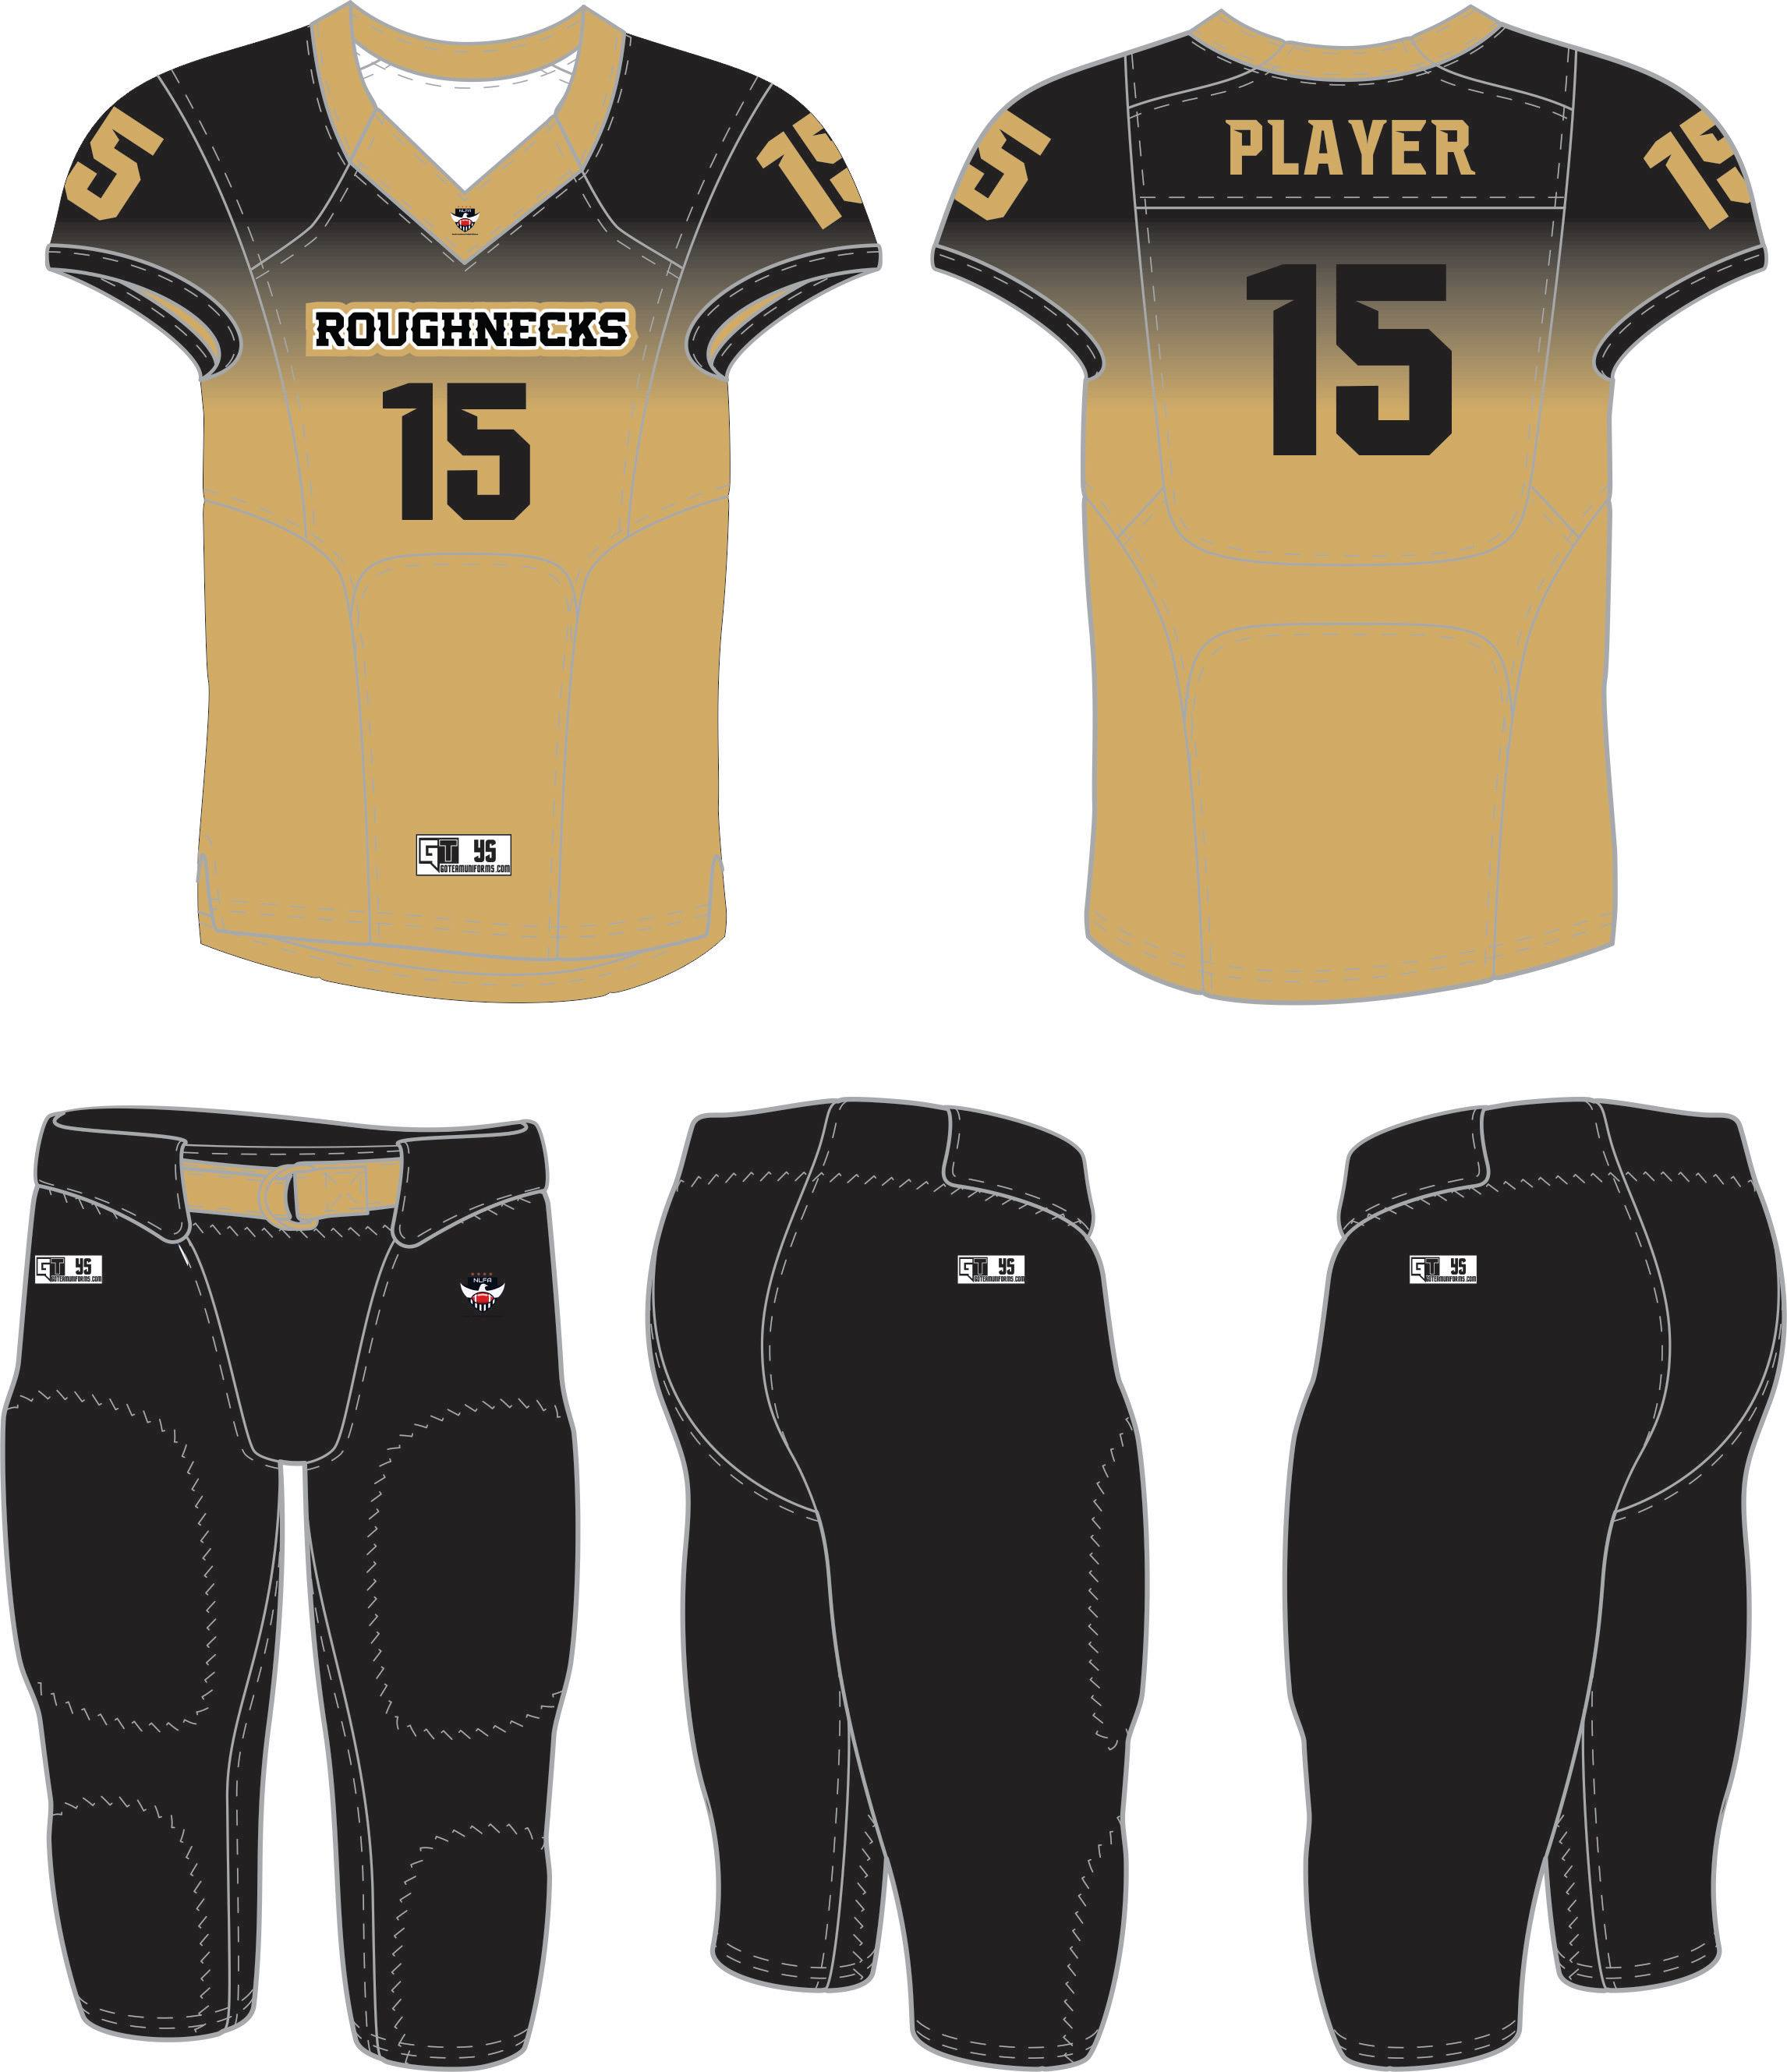 Wranglers Tackle Uniform